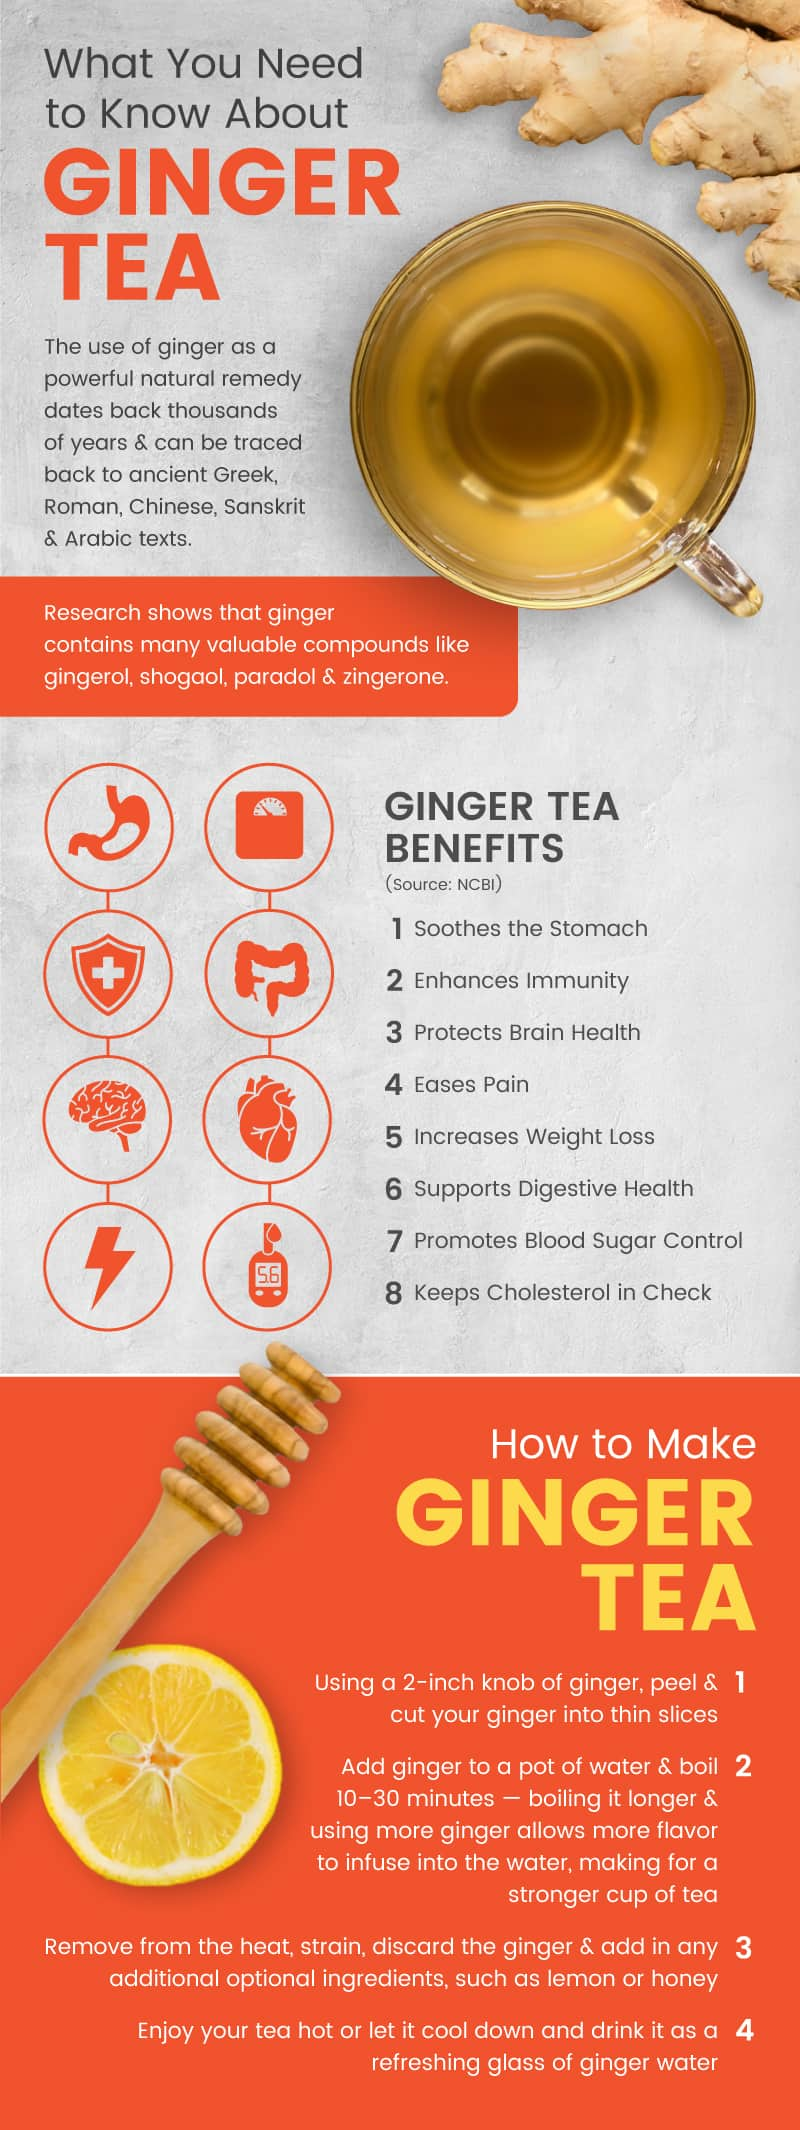 Ginger tea benefits - Dr. Axe